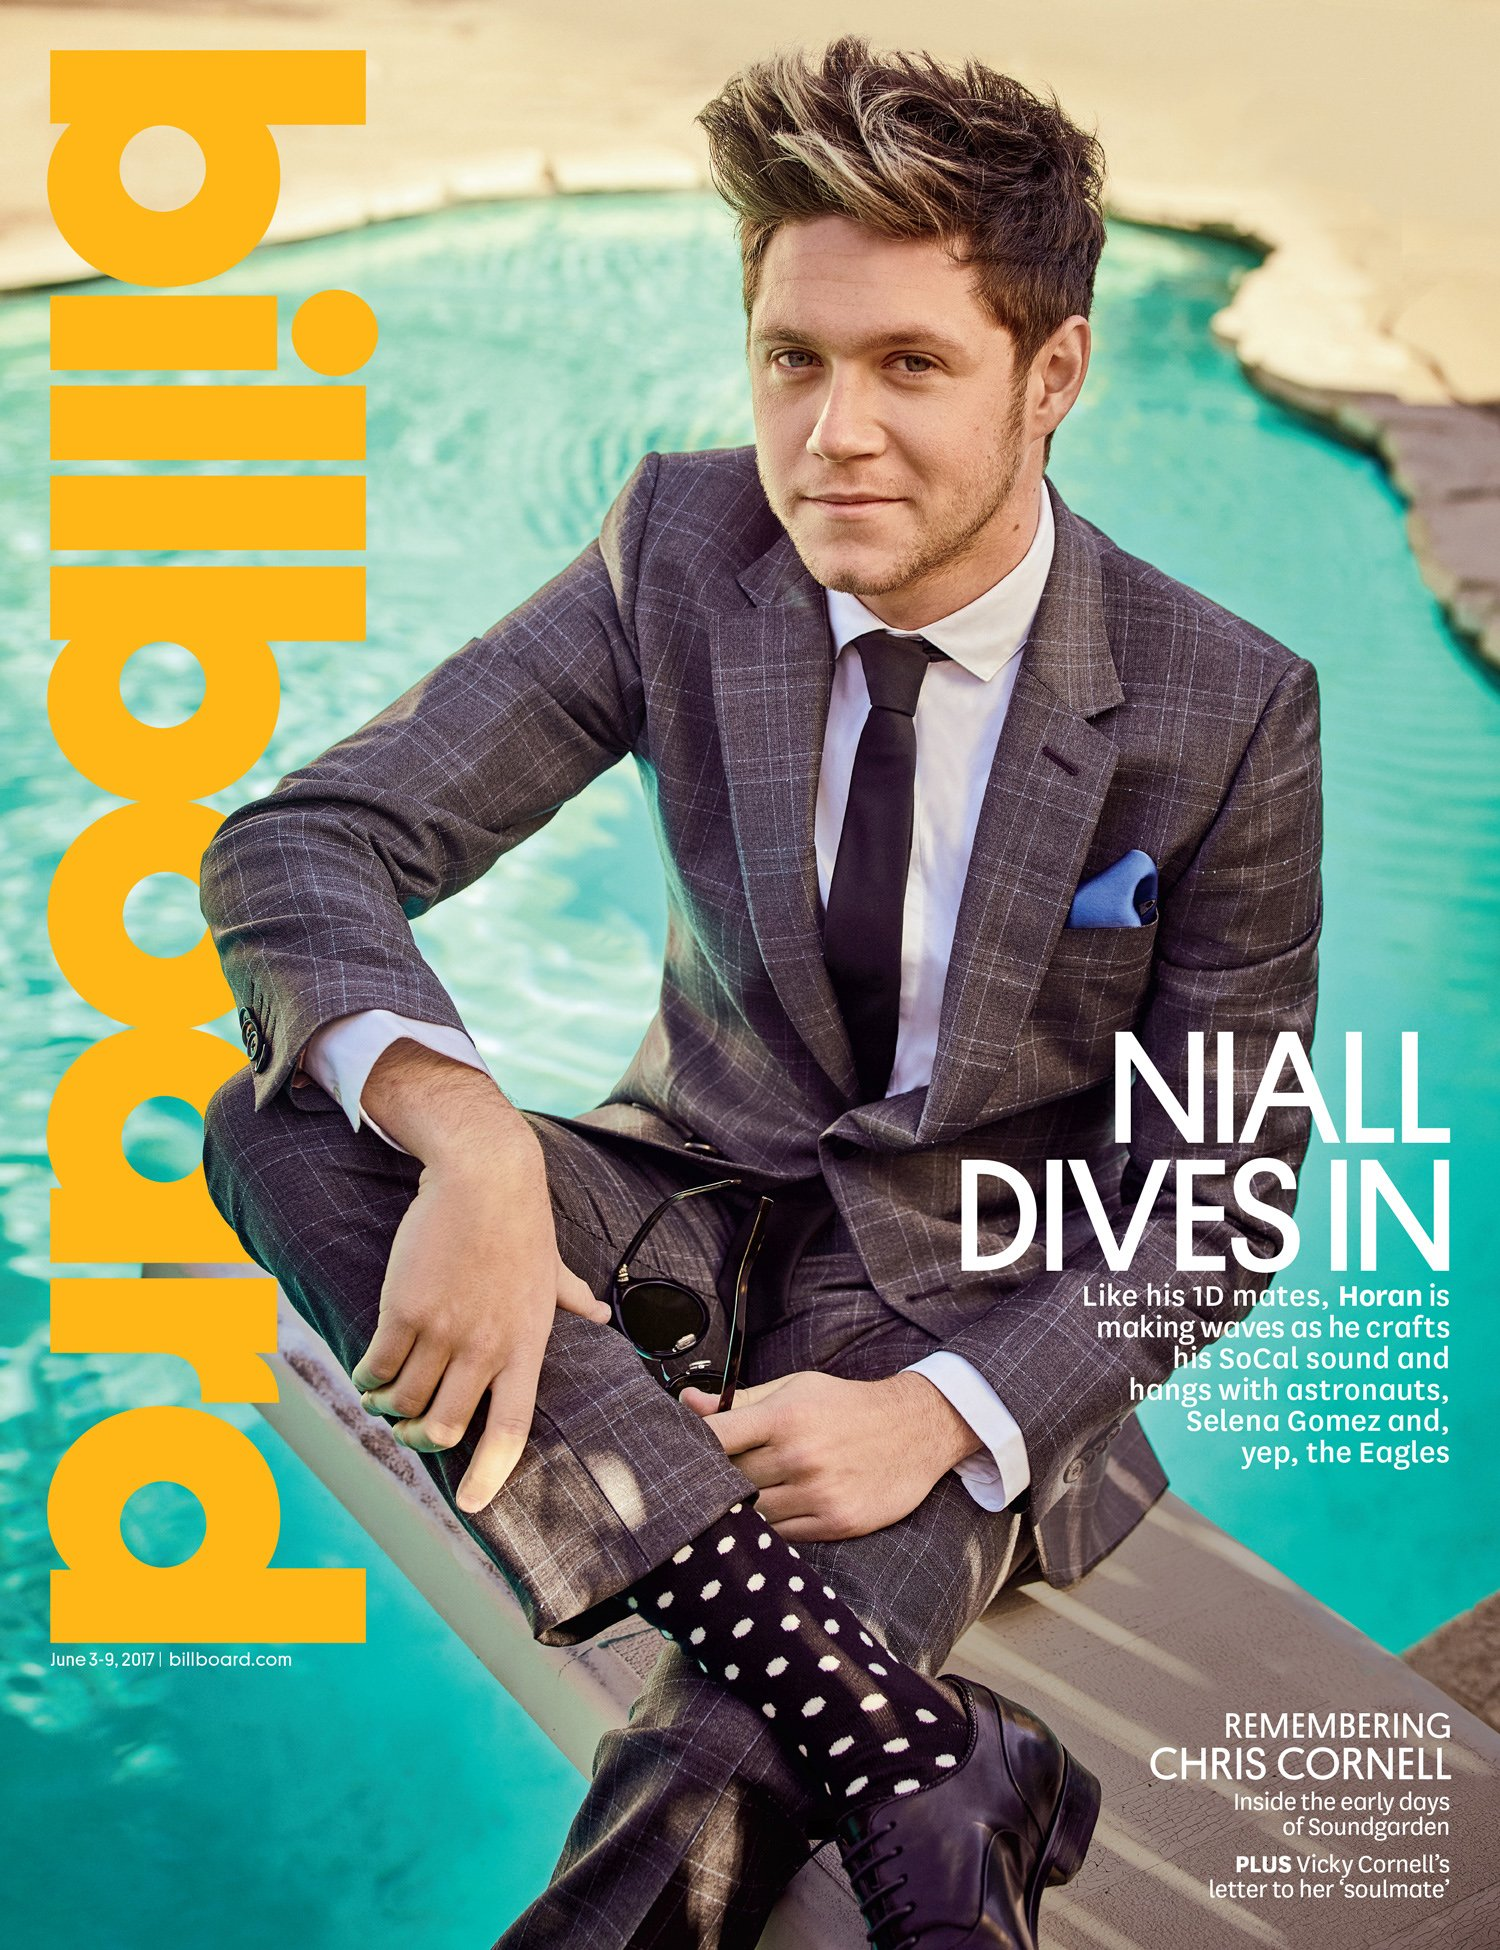 Loving @NiallOfficial in #PaulSmith on the cover of @Billboard last week. https://t.co/lWVVbLj39h https://t.co/KFMvrJowOp